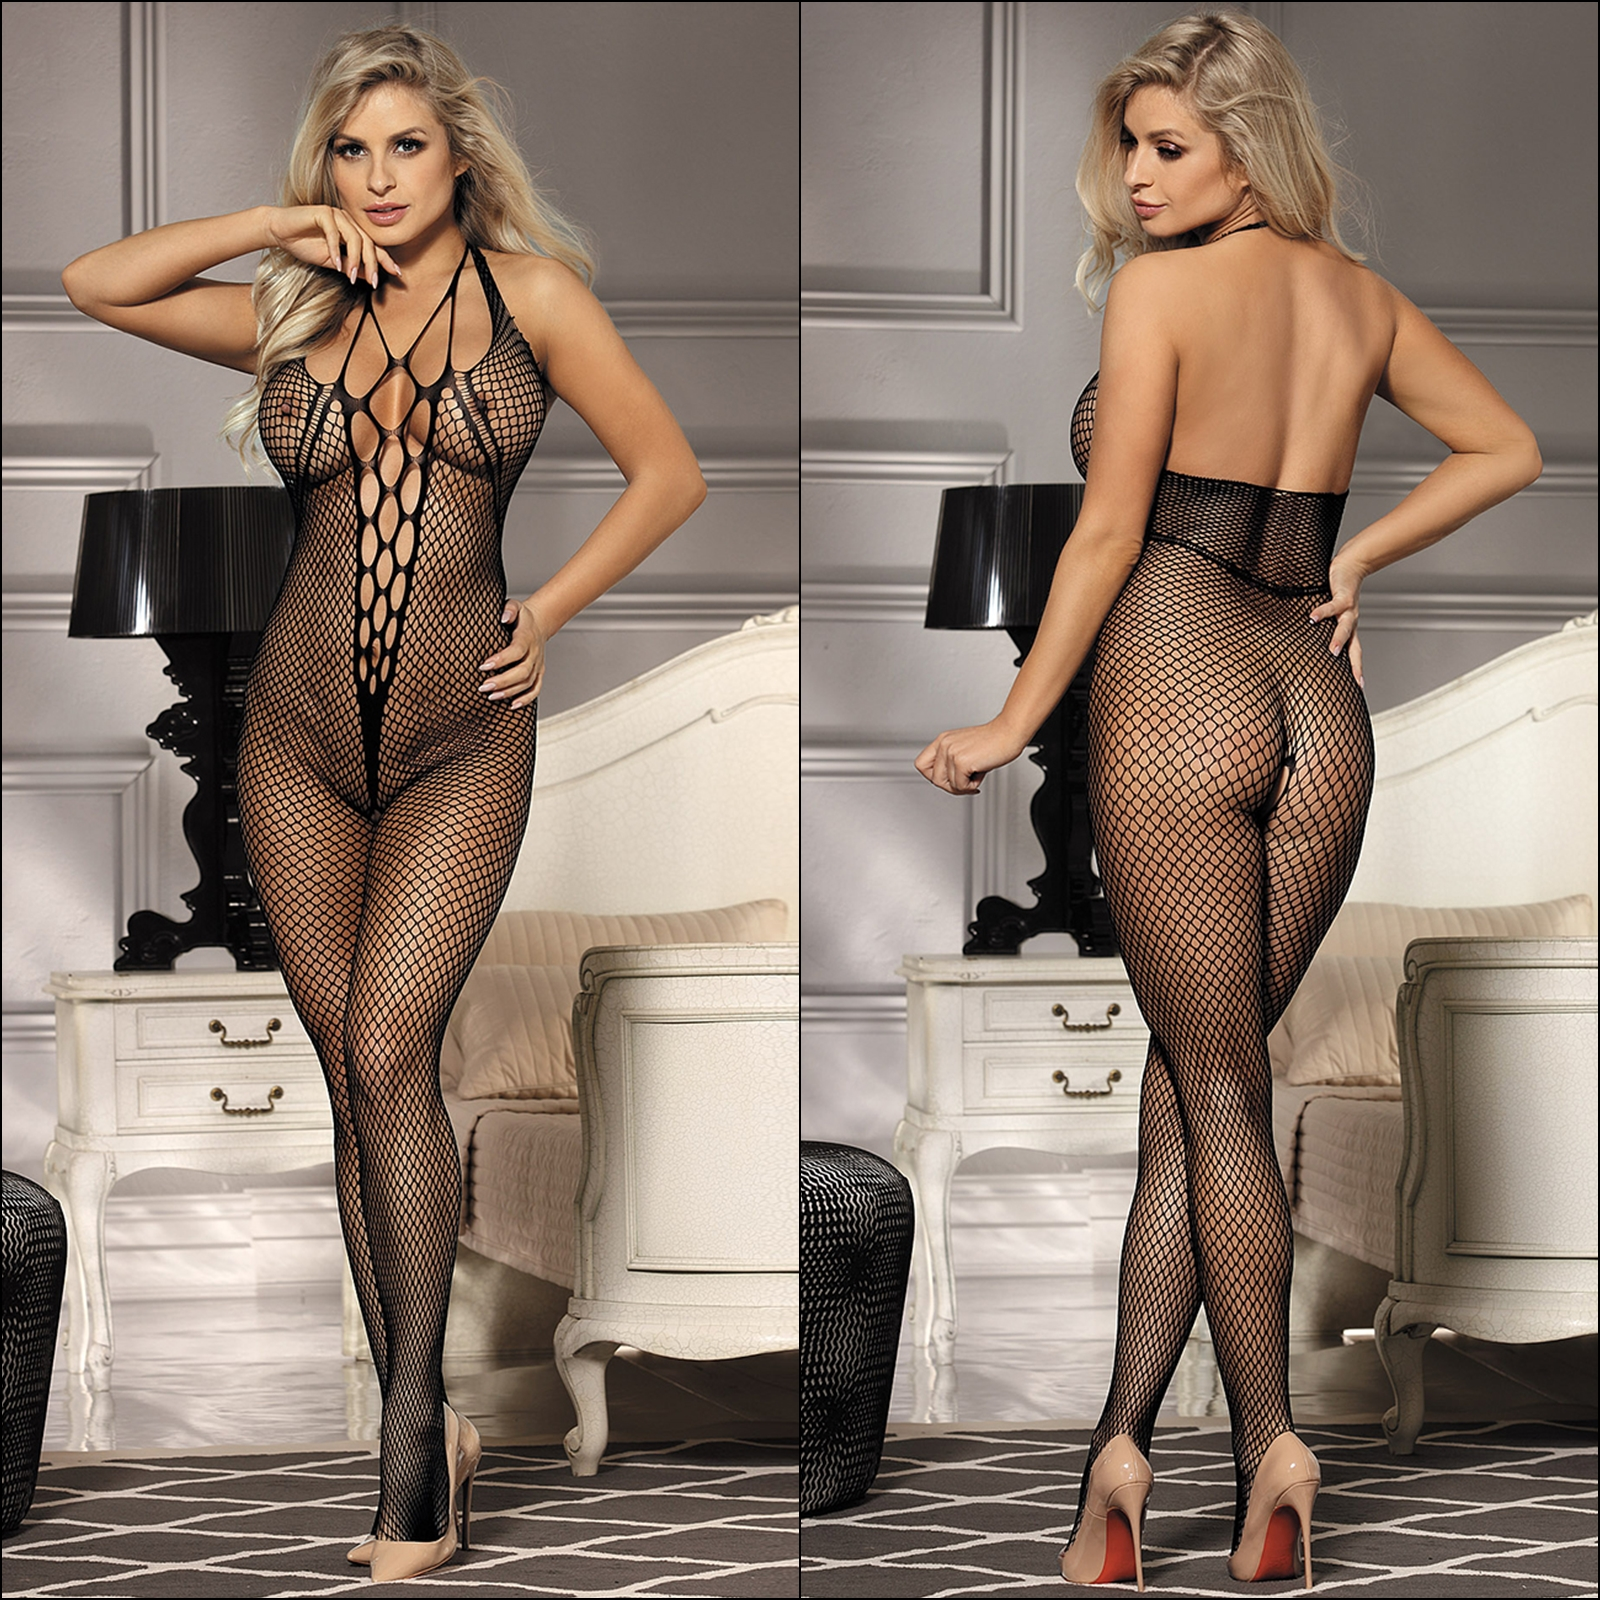 Teen In A Fishnet Bodysuit Has Her Butthole Nailed Filled With Creamy Jizz